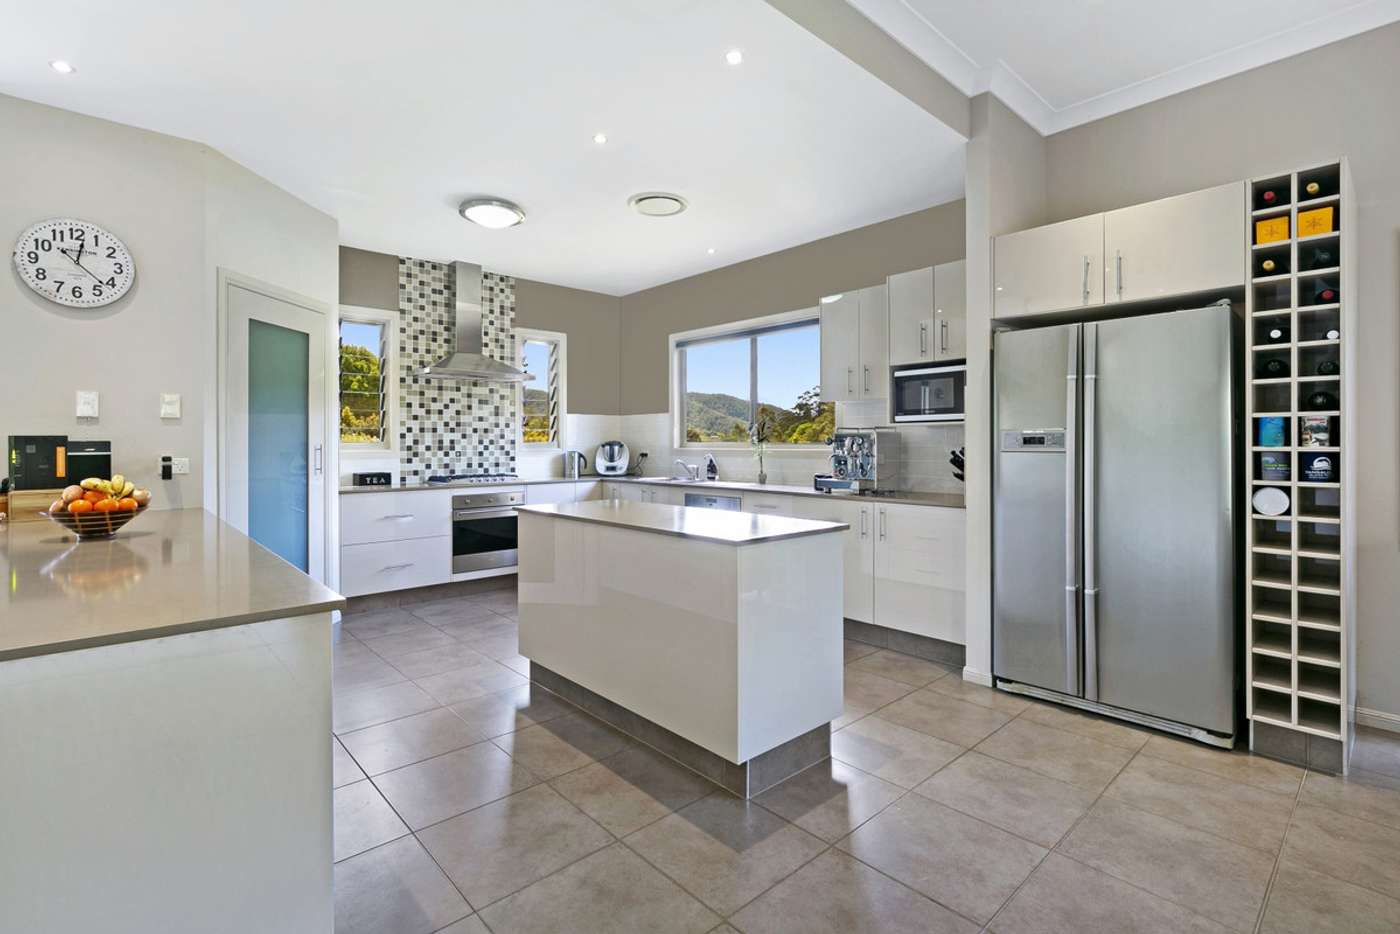 Sixth view of Homely house listing, 134 Petsch Creek Road, Tallebudgera Valley QLD 4228